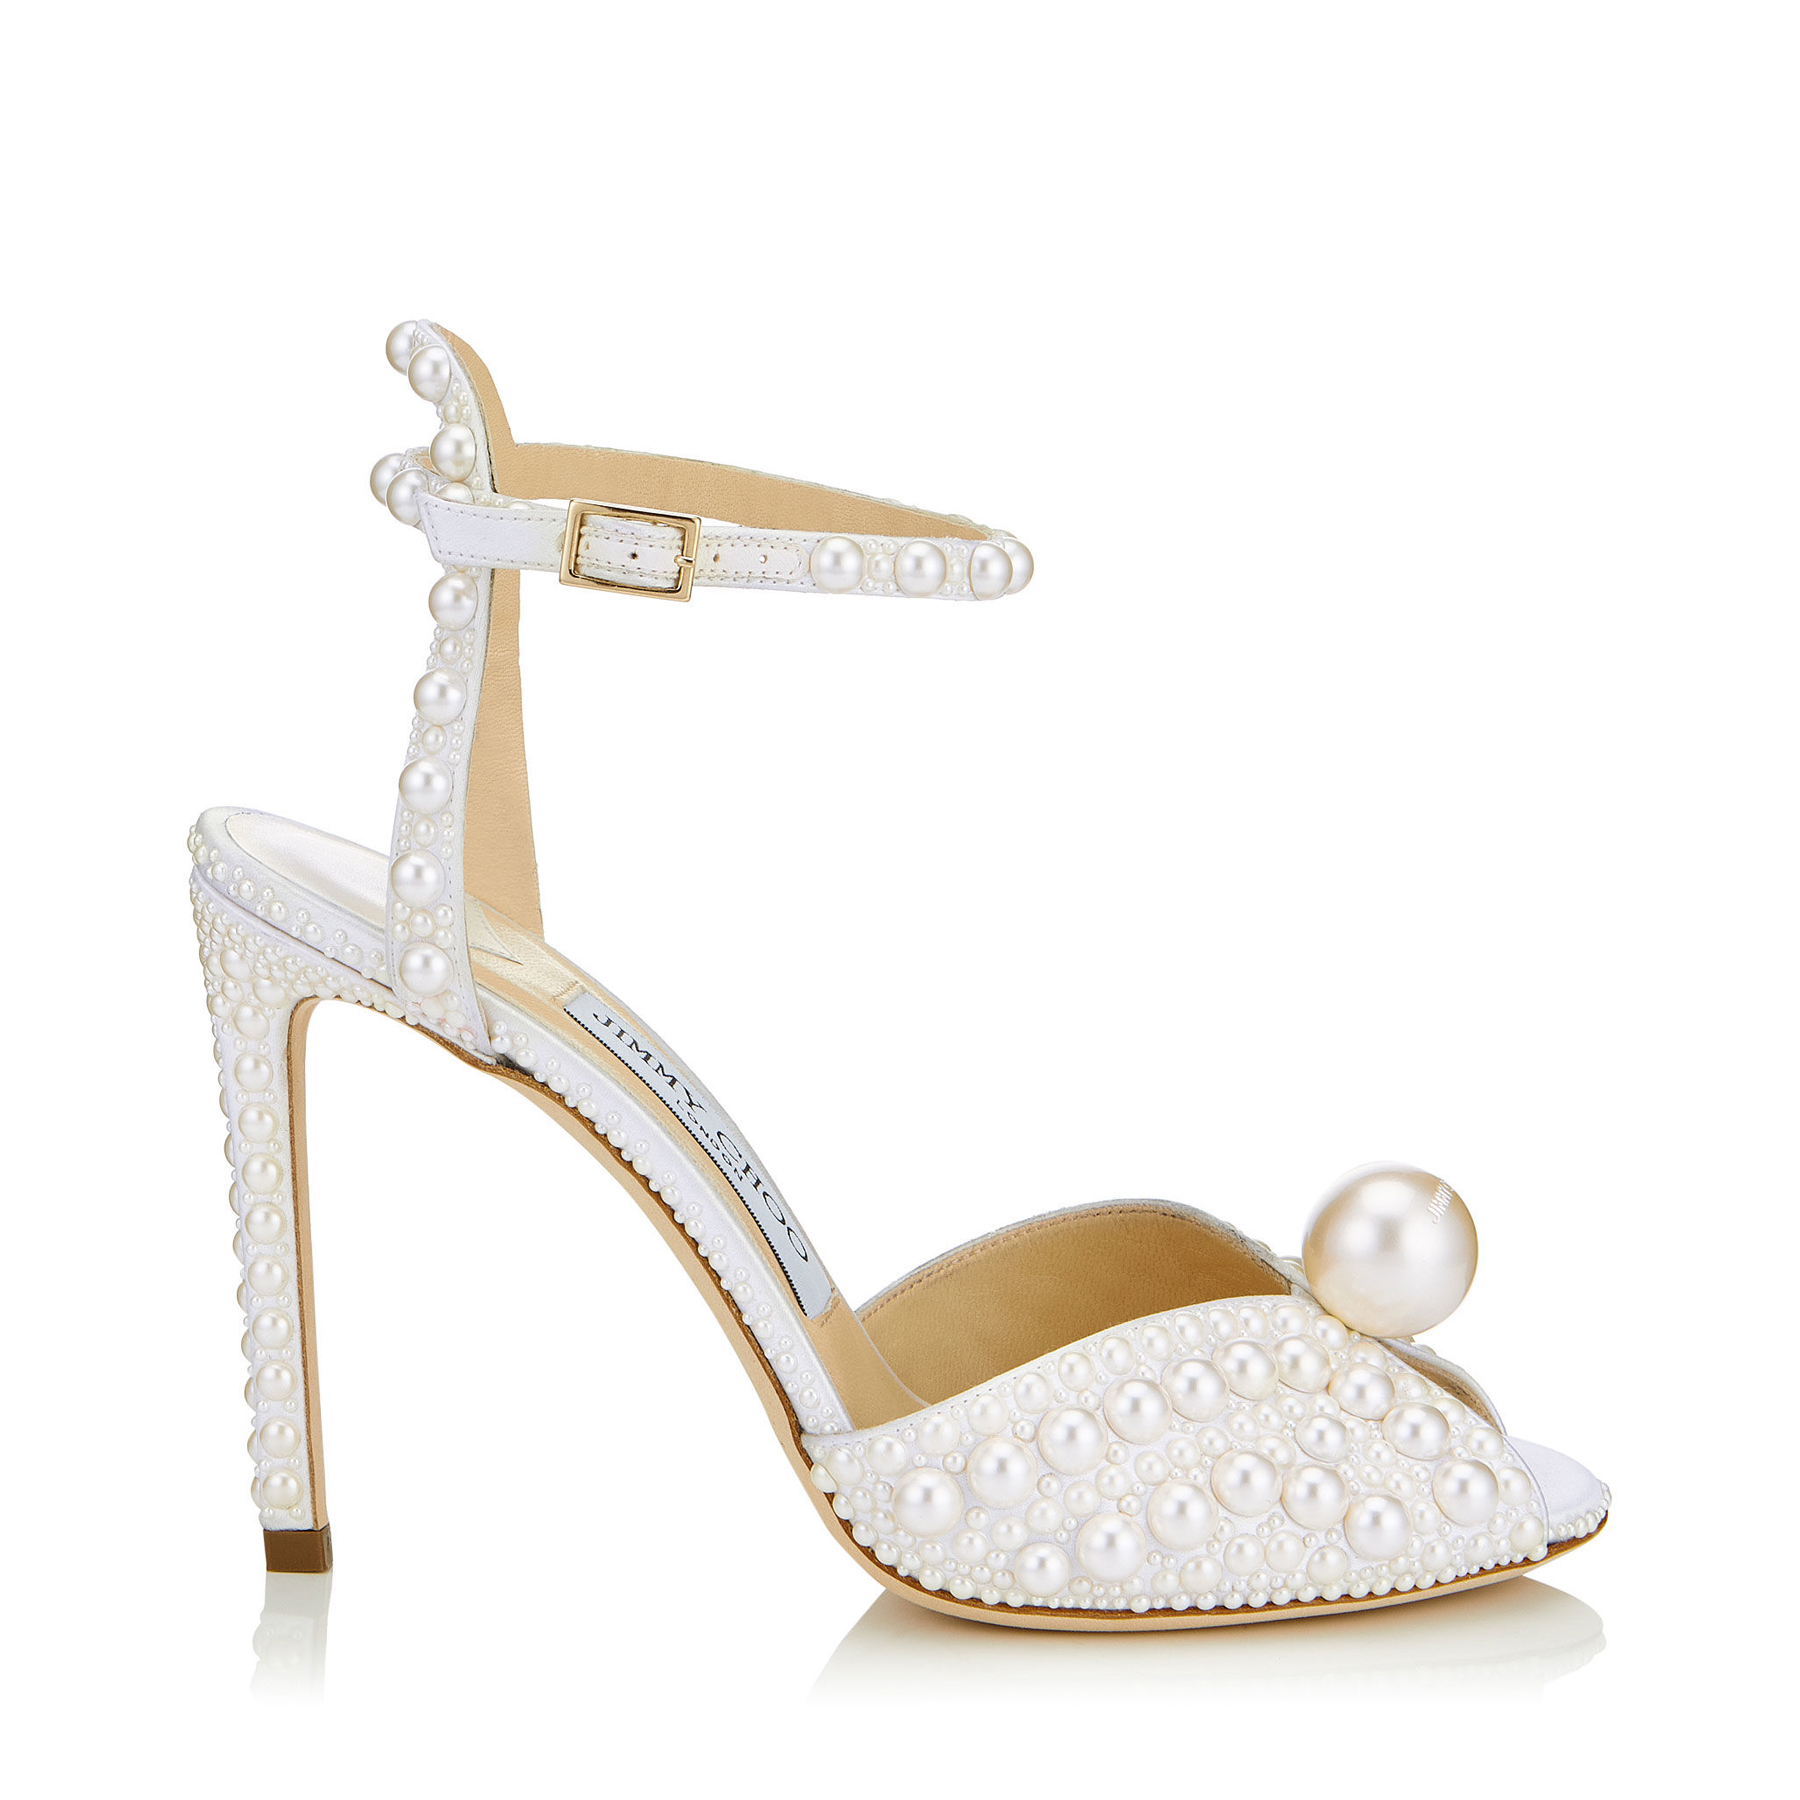 SACORA 100 White Satin Sandals with All Over Pearls by Jimmy Choo